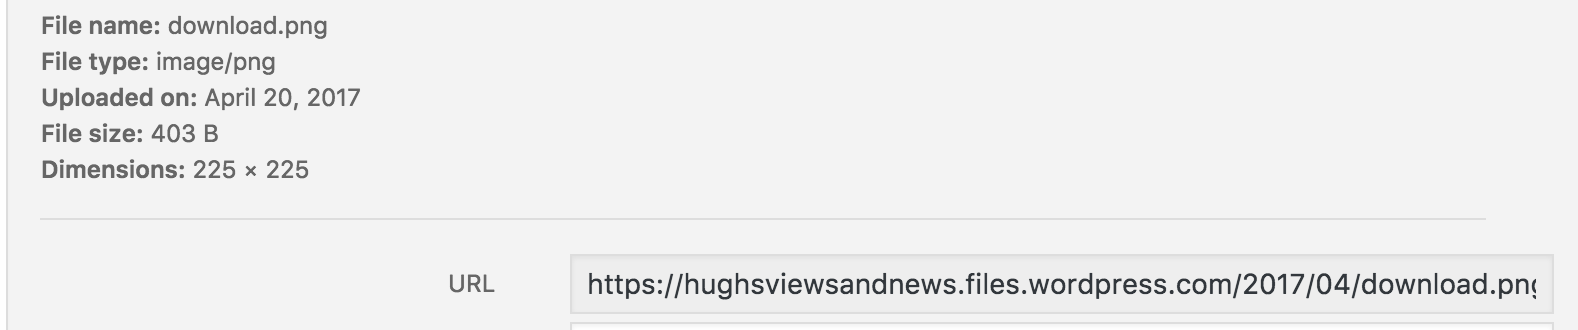 The URL address of an image from a WordPress media library